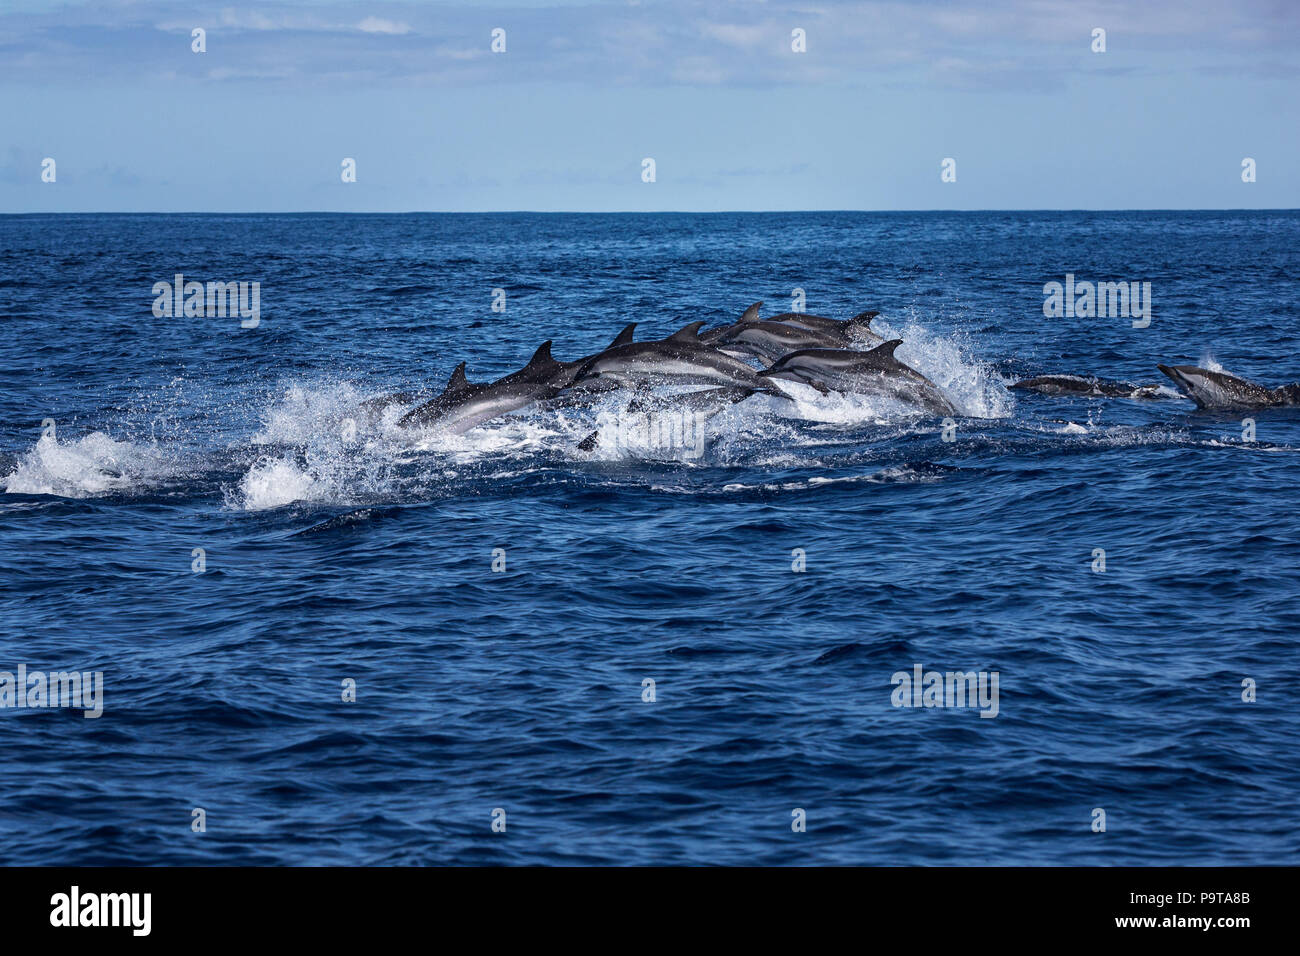 Big group of dolphins jumping from the ocean - Stock Image